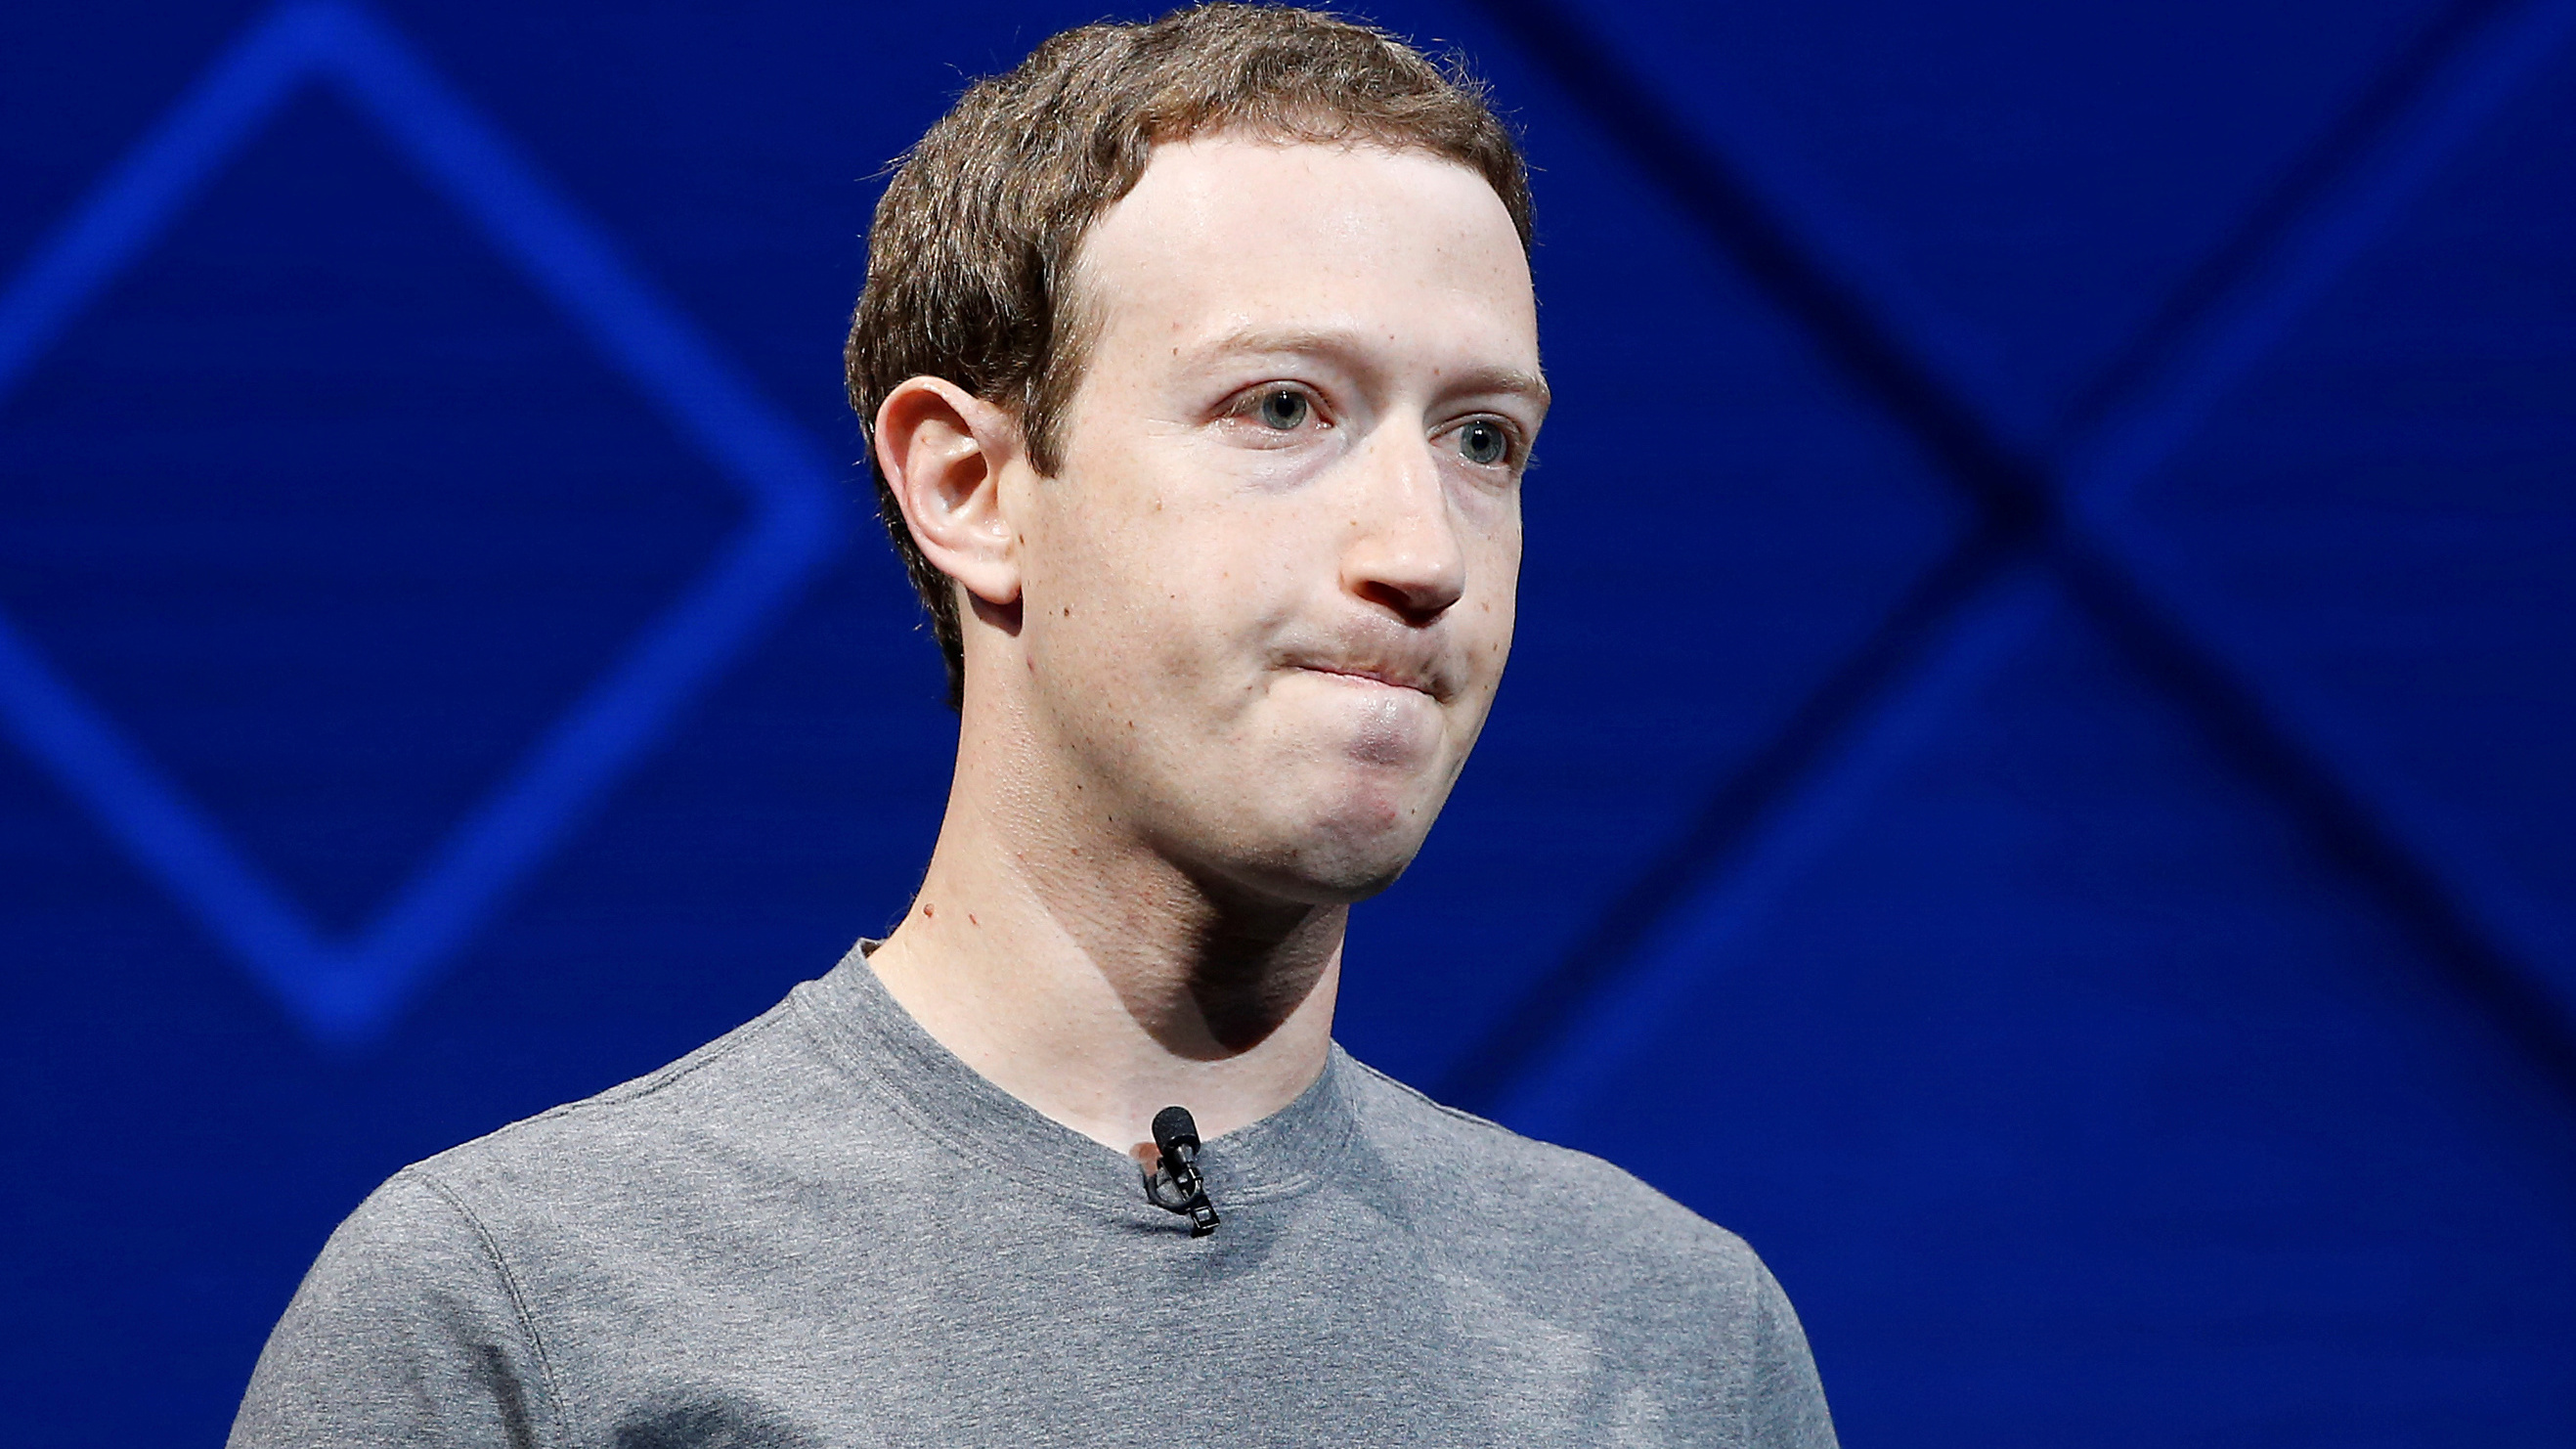 Facebook's Mark Zuckerberg Will Testify Before Congress On April 10 And 11